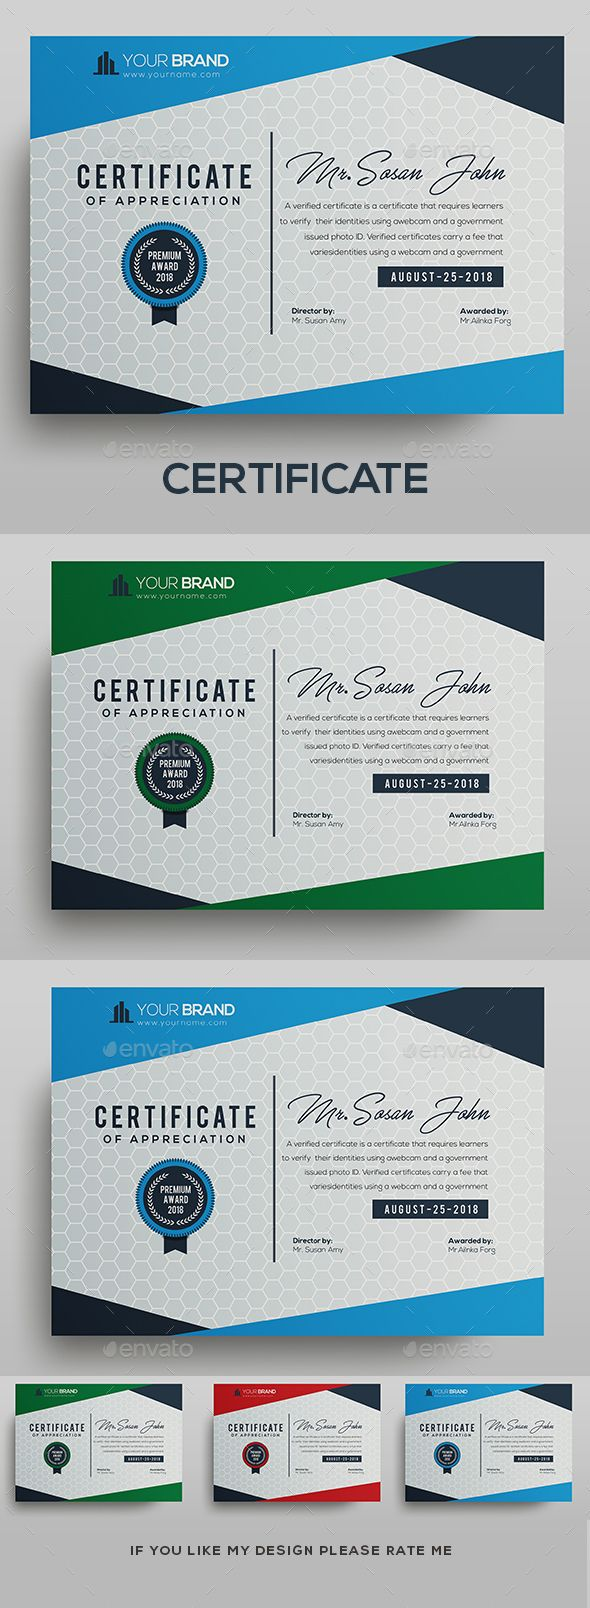 Certificate Template Fully Clean Certificate?A4 Paper Size With BleedsQuick and ...